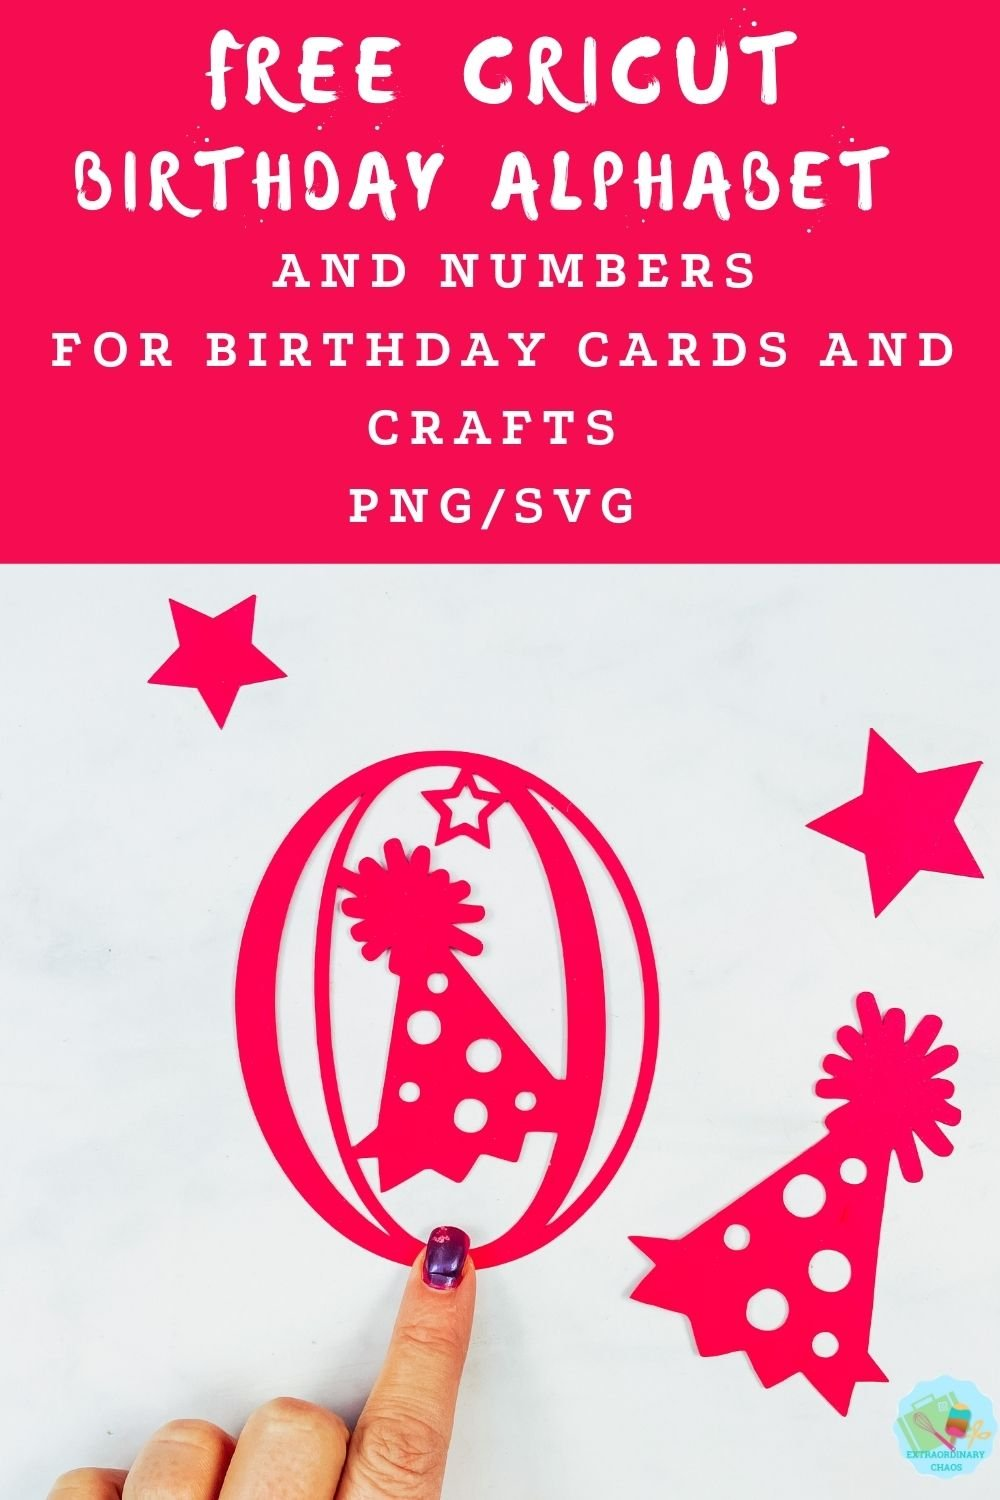 Free downloadable Birthday Alphabet and number template for parties, banners, card making, banners , birthday decorations, and invitations